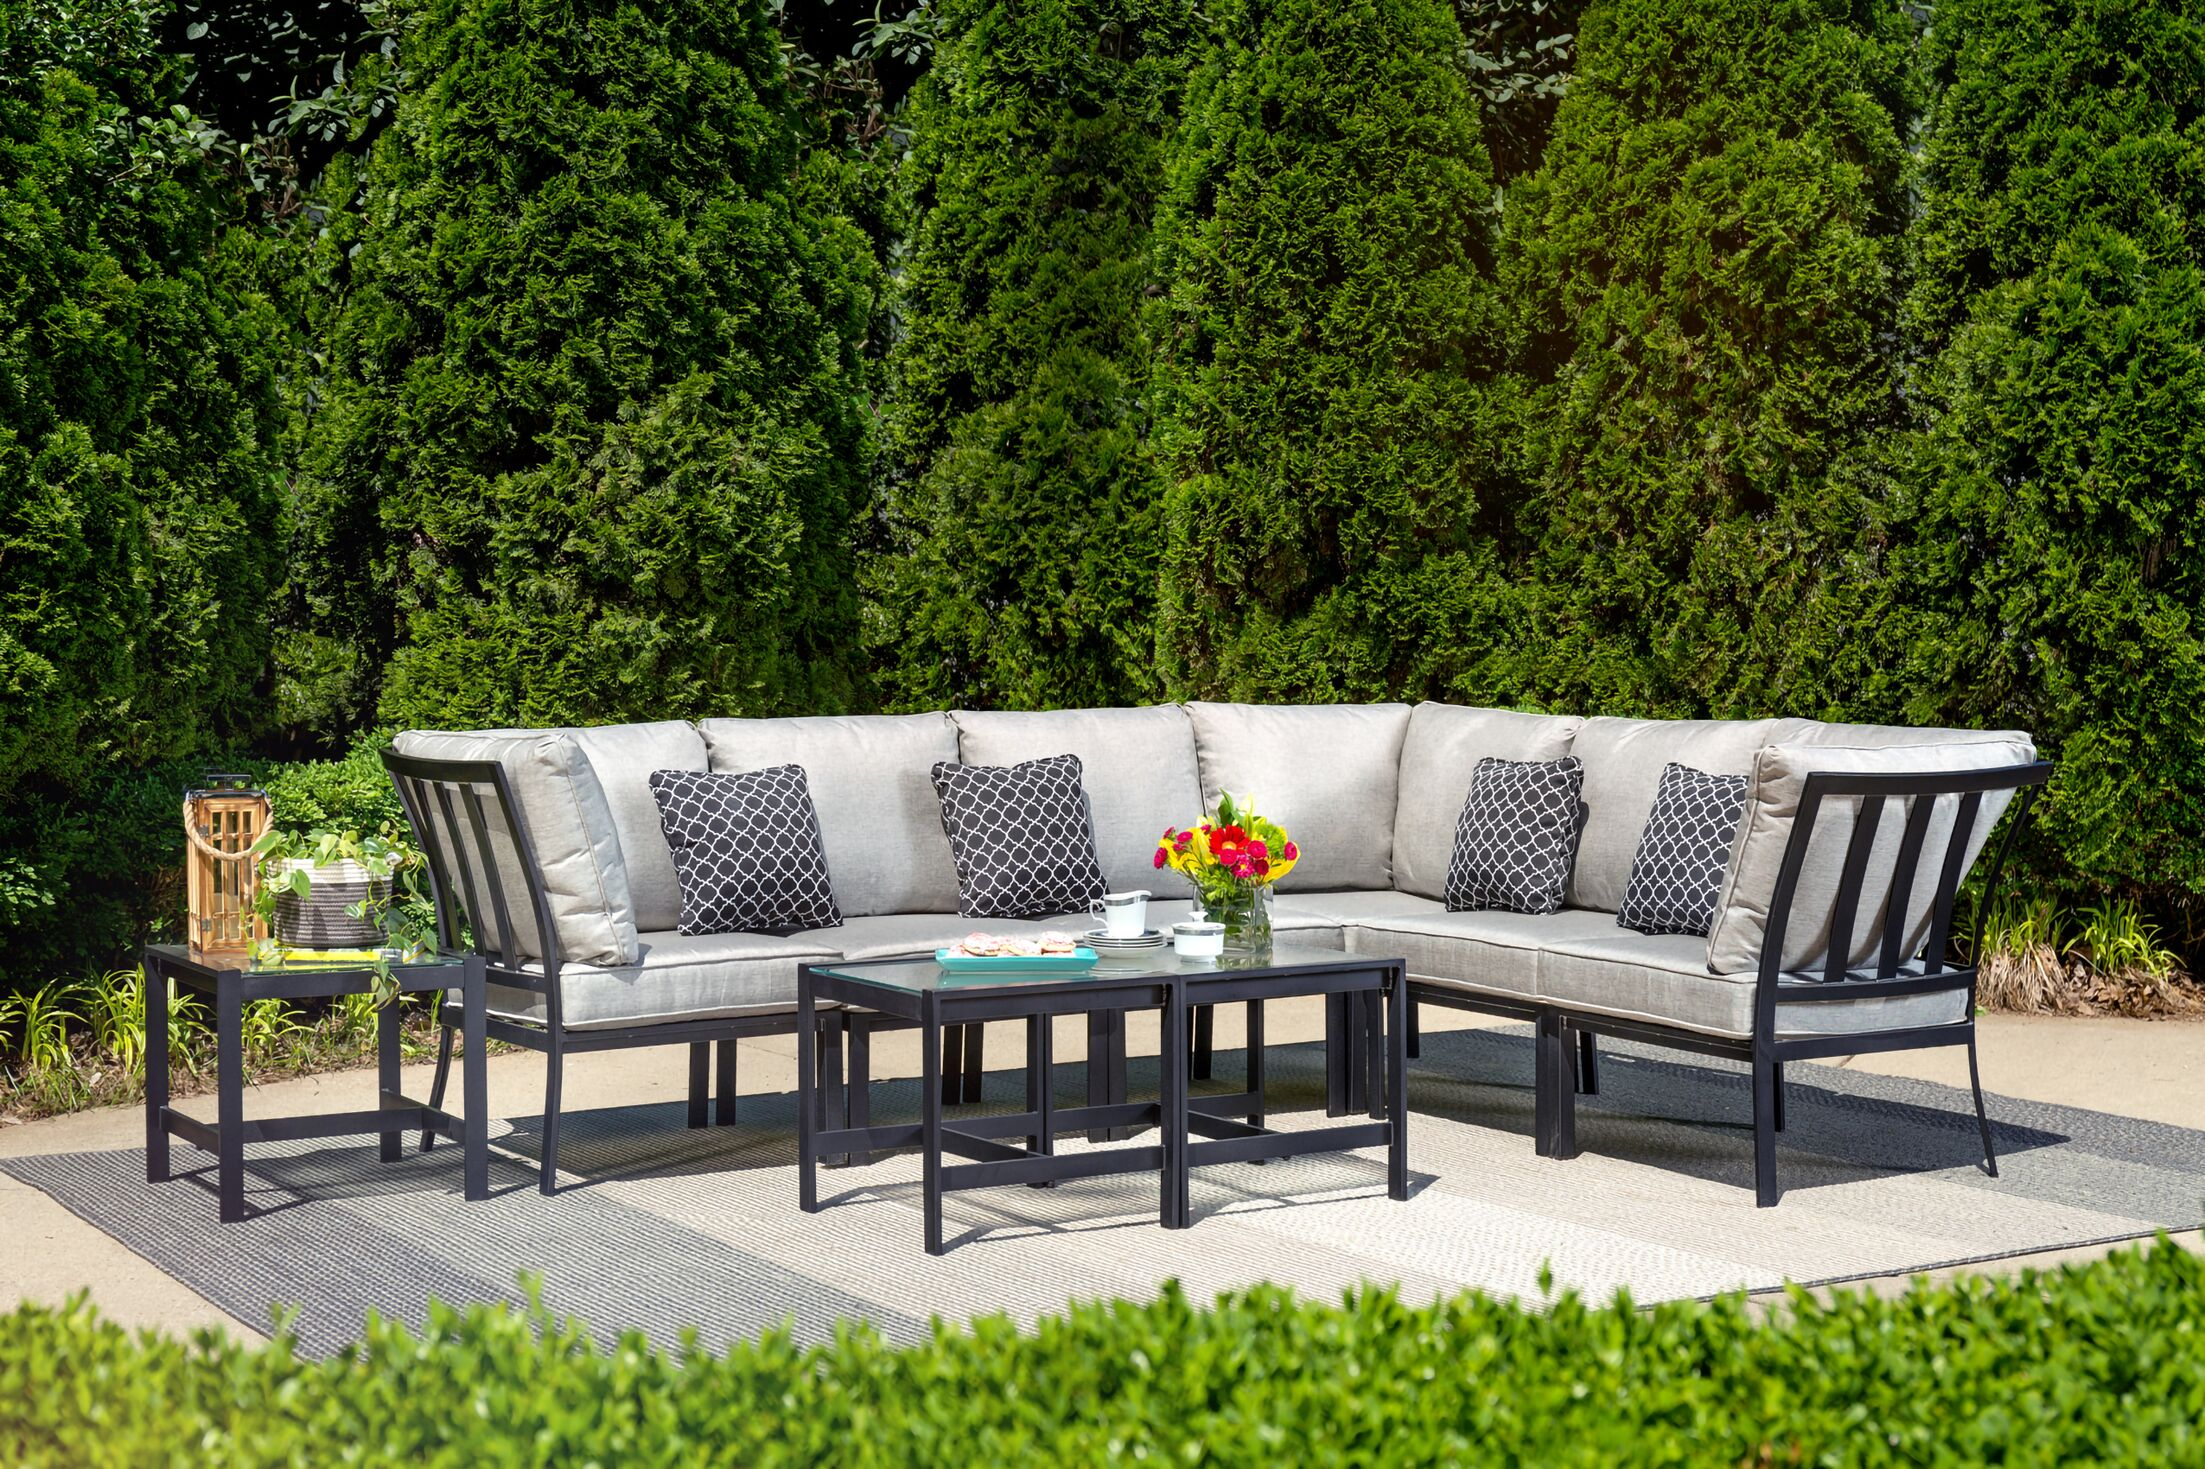 Avalon 9 Piece Rattan Sectional Set with Cushions Cushion Color: Silver Linings